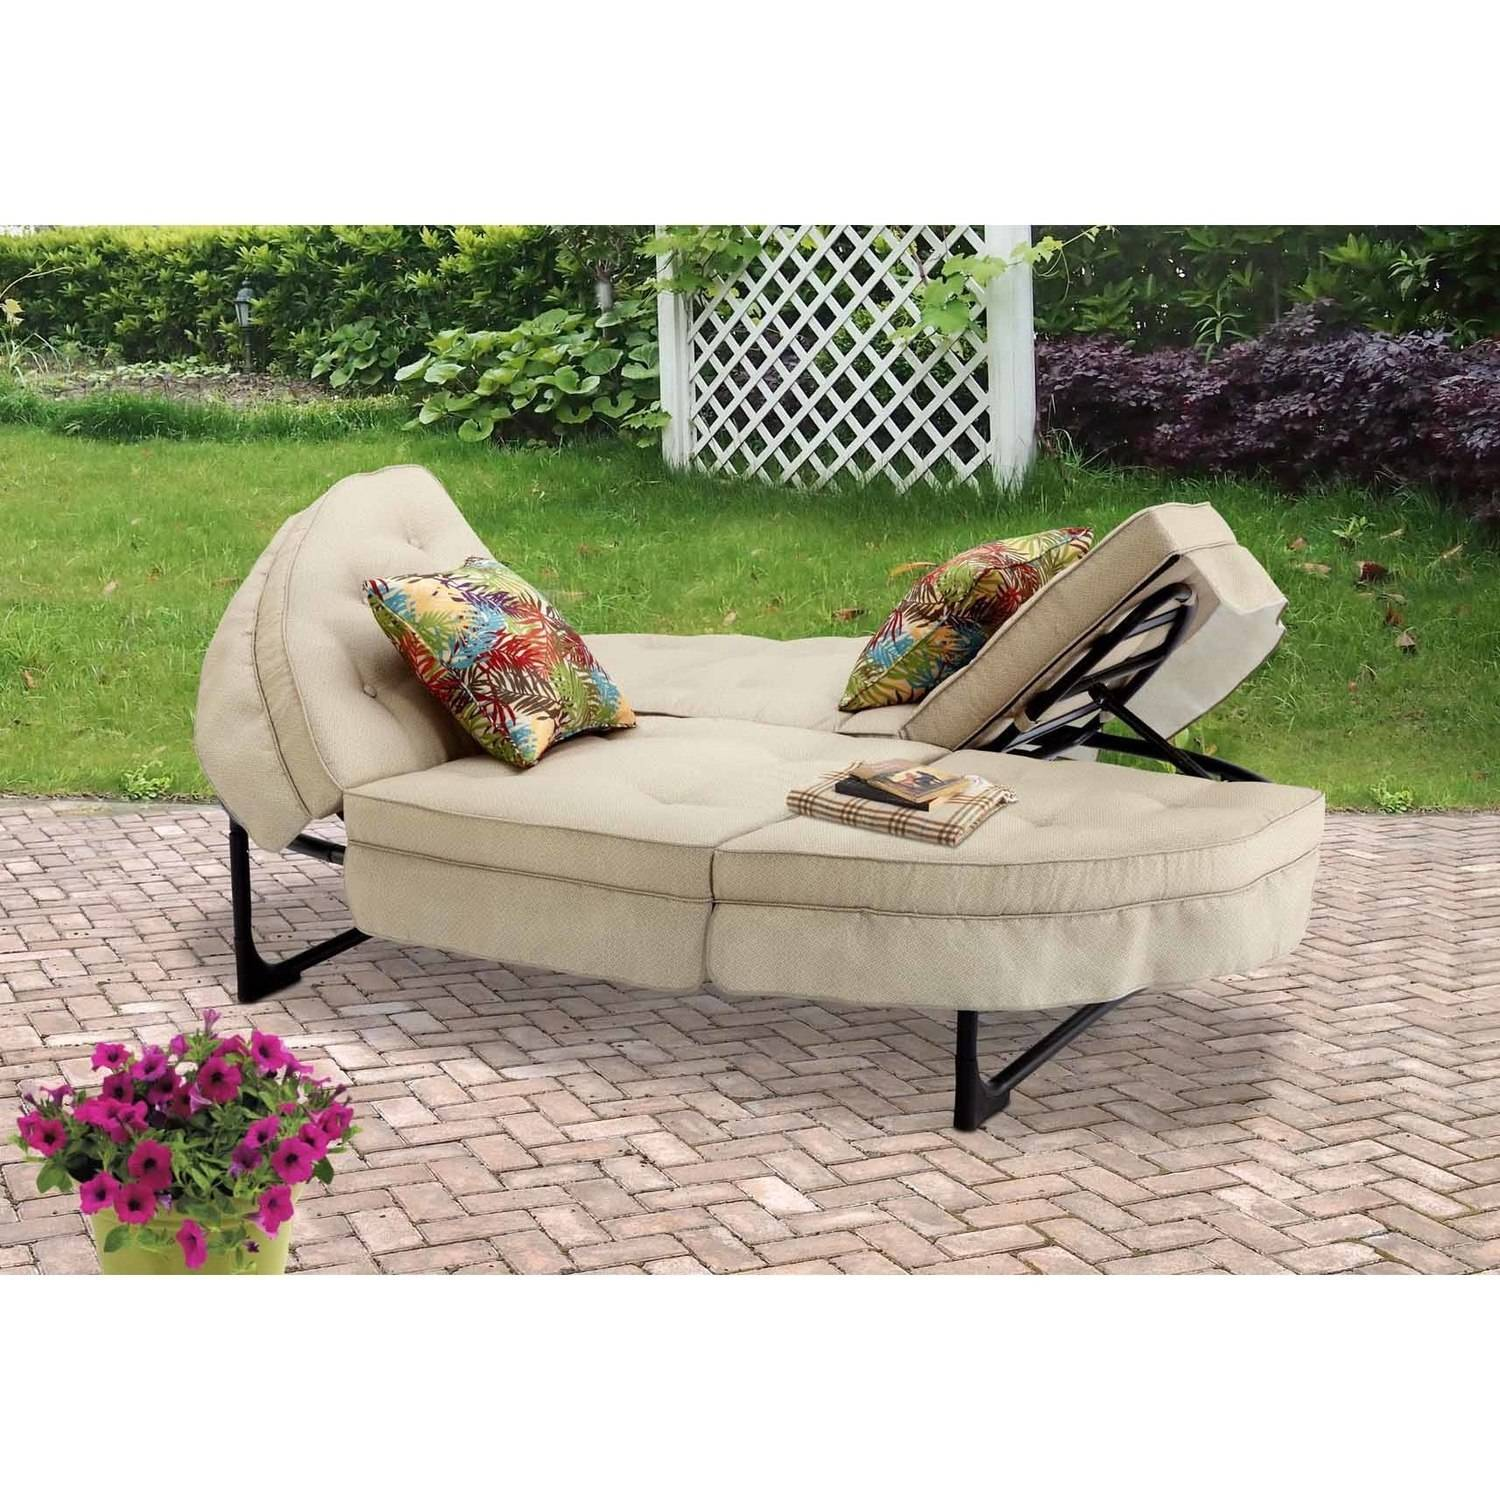 Better homes and gardens clayton court chaise lounge with for Patio furniture chaise lounge